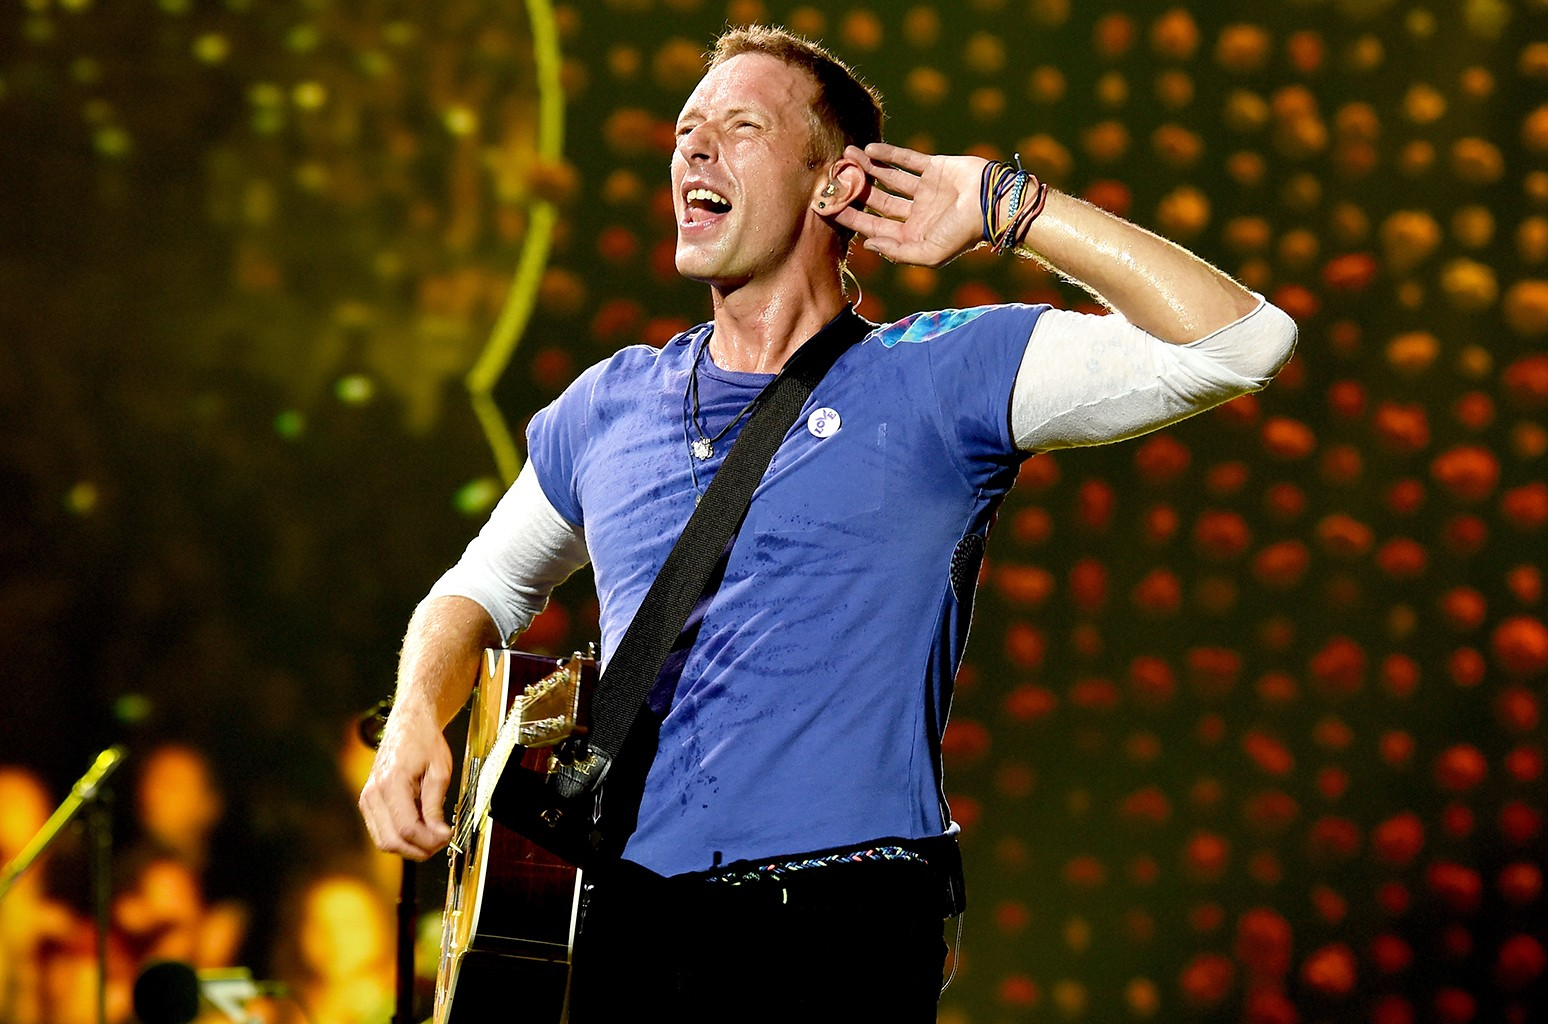 Chris Martin of Coldplay performs at the Rose Bowl